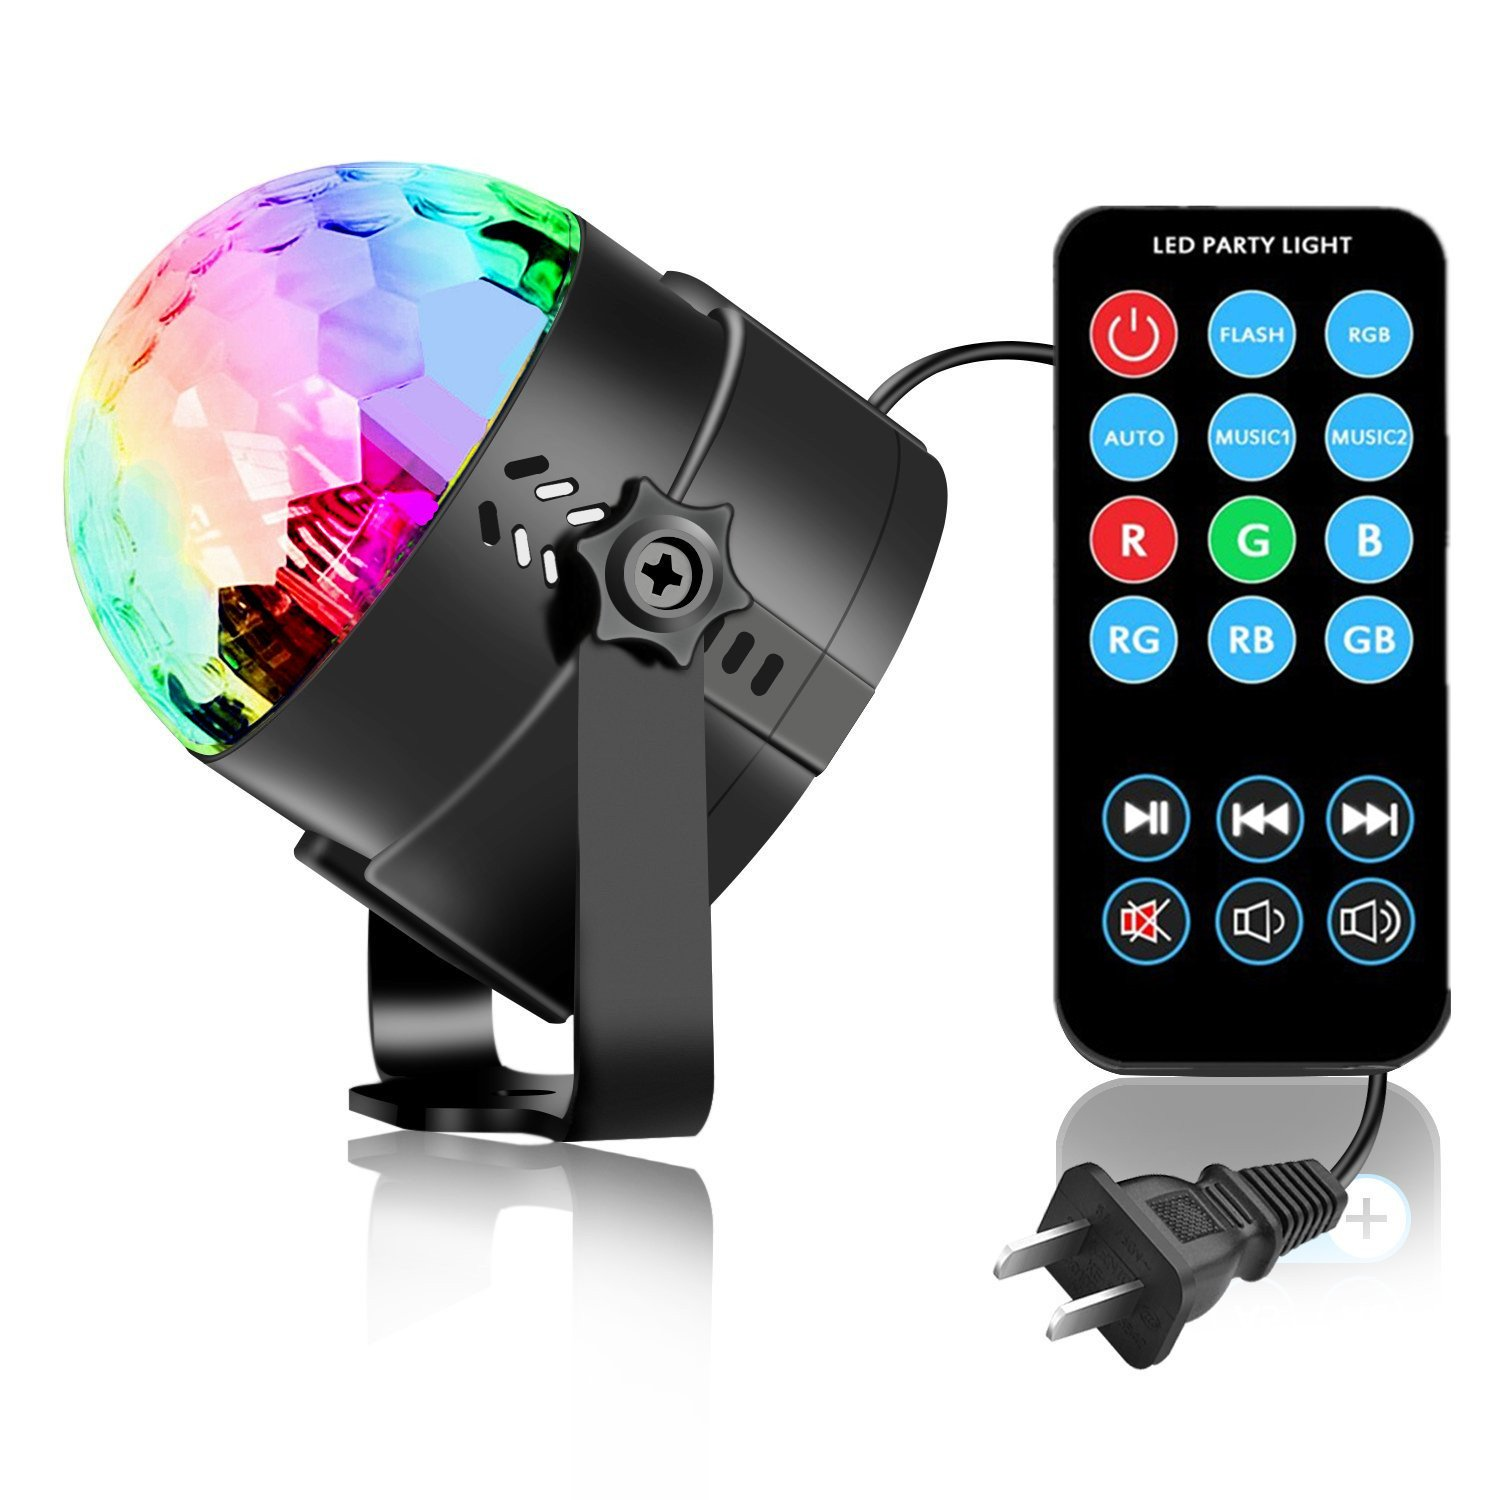 SUKY Disco Ball Disco Light 3w Party Lights led Music Atctivated Strobe Lights for Home Room Dance Parties DJ Lightshow for Birthday Club Karaoke Wedding Decorations